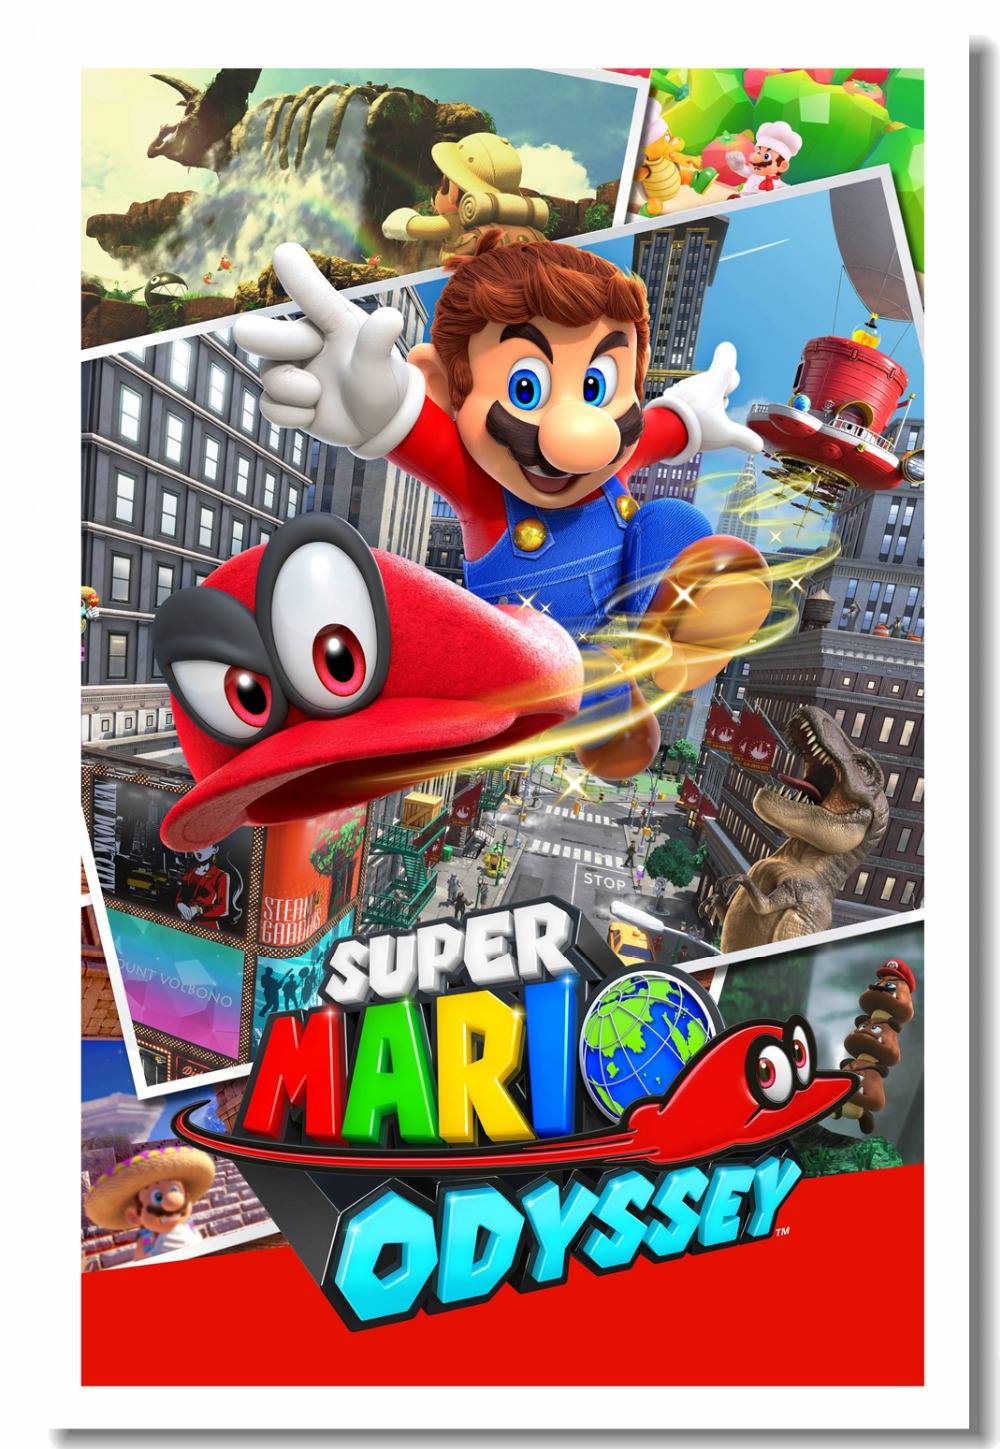 Custom Canvas Wall Decals Super Mario Odyssey Poster Mario Bros Wall Sticker Mural Living Wallpaper Kids Room Decorations 0506 Wall Stickers Aliexpress